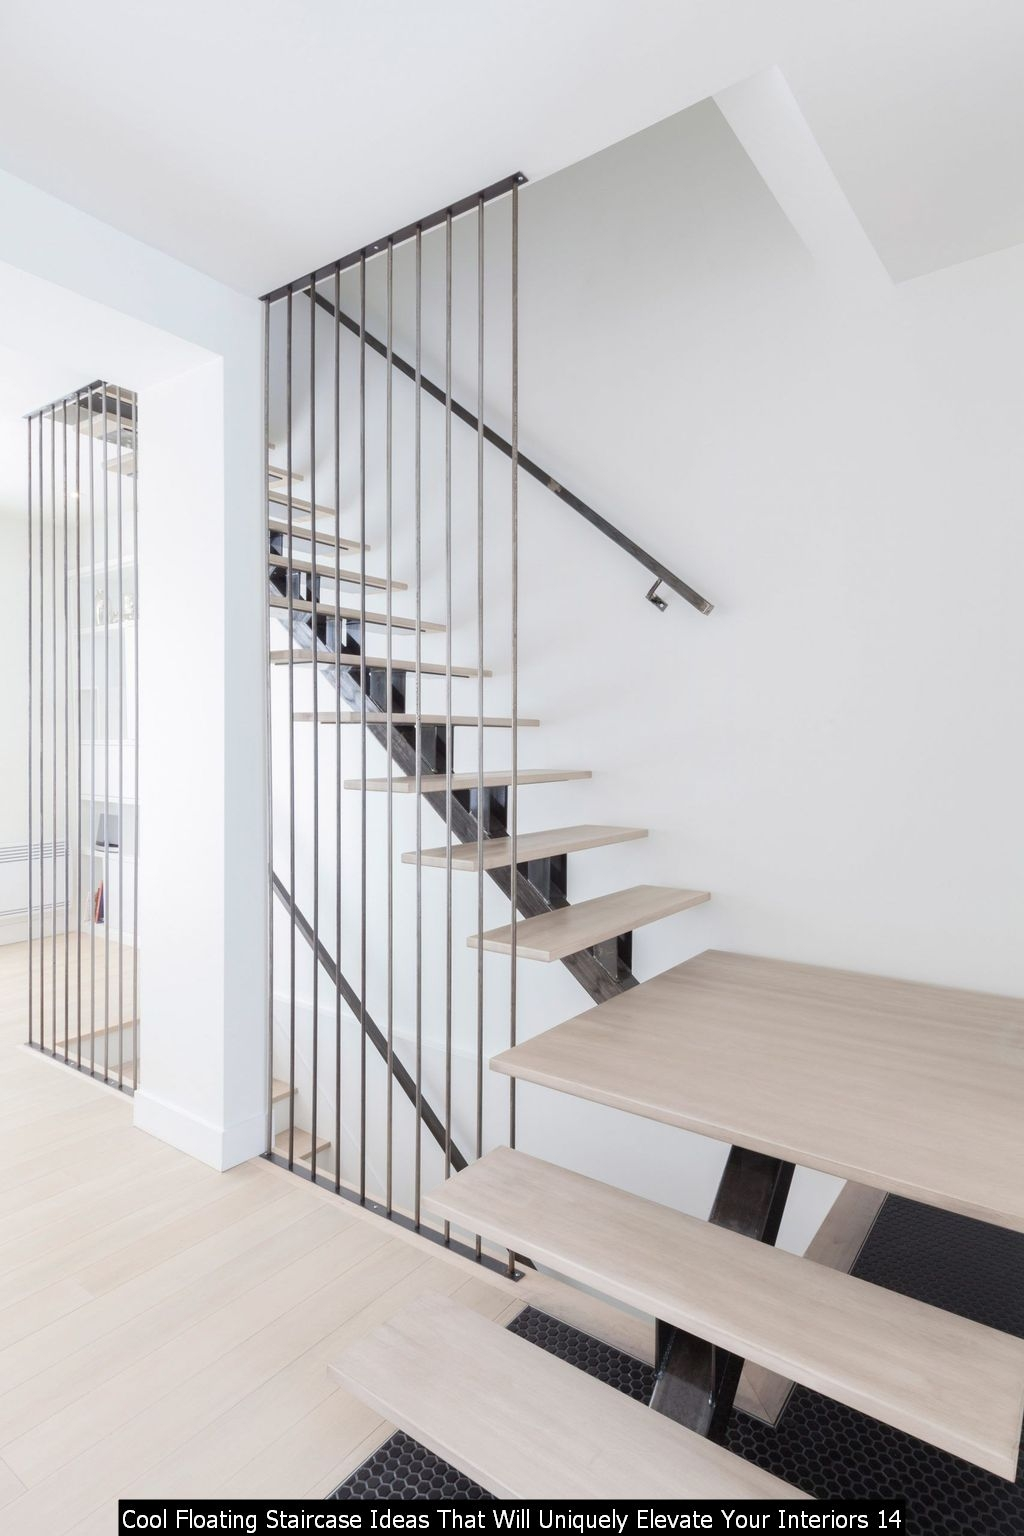 Cool Floating Staircase Ideas That Will Uniquely Elevate Your Interiors 14